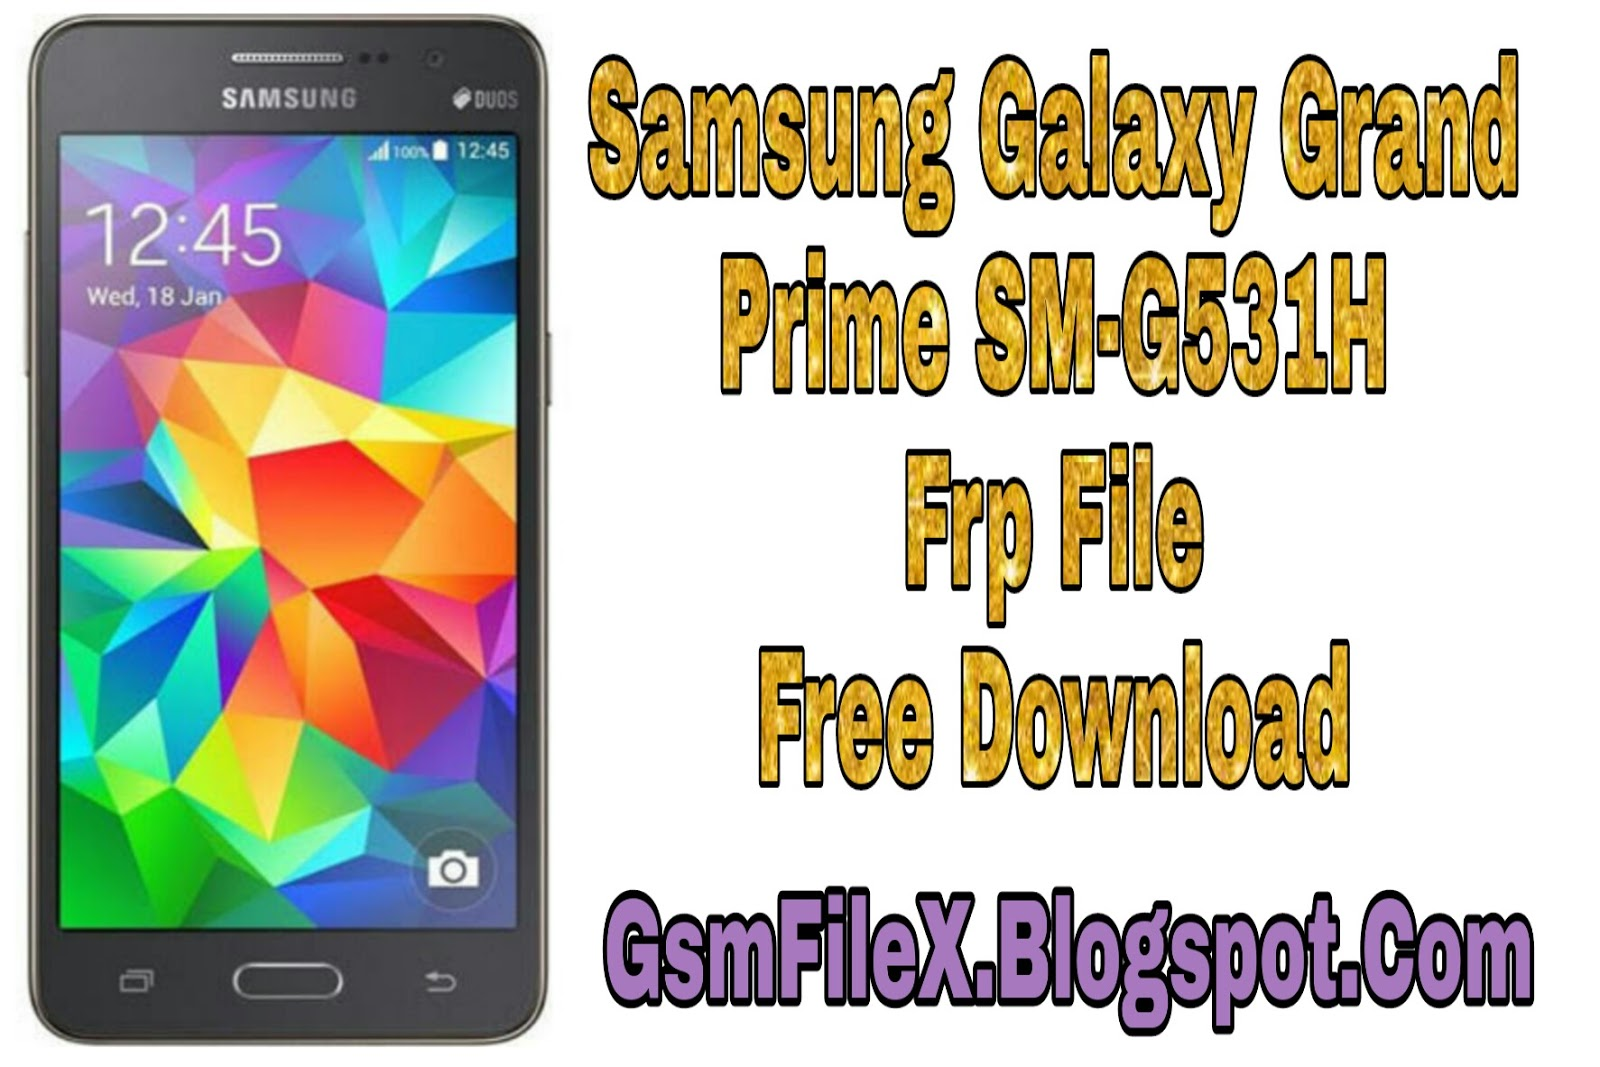 Samsung Galaxy Grand Prime SM-G531H Frp File - Download All Tested